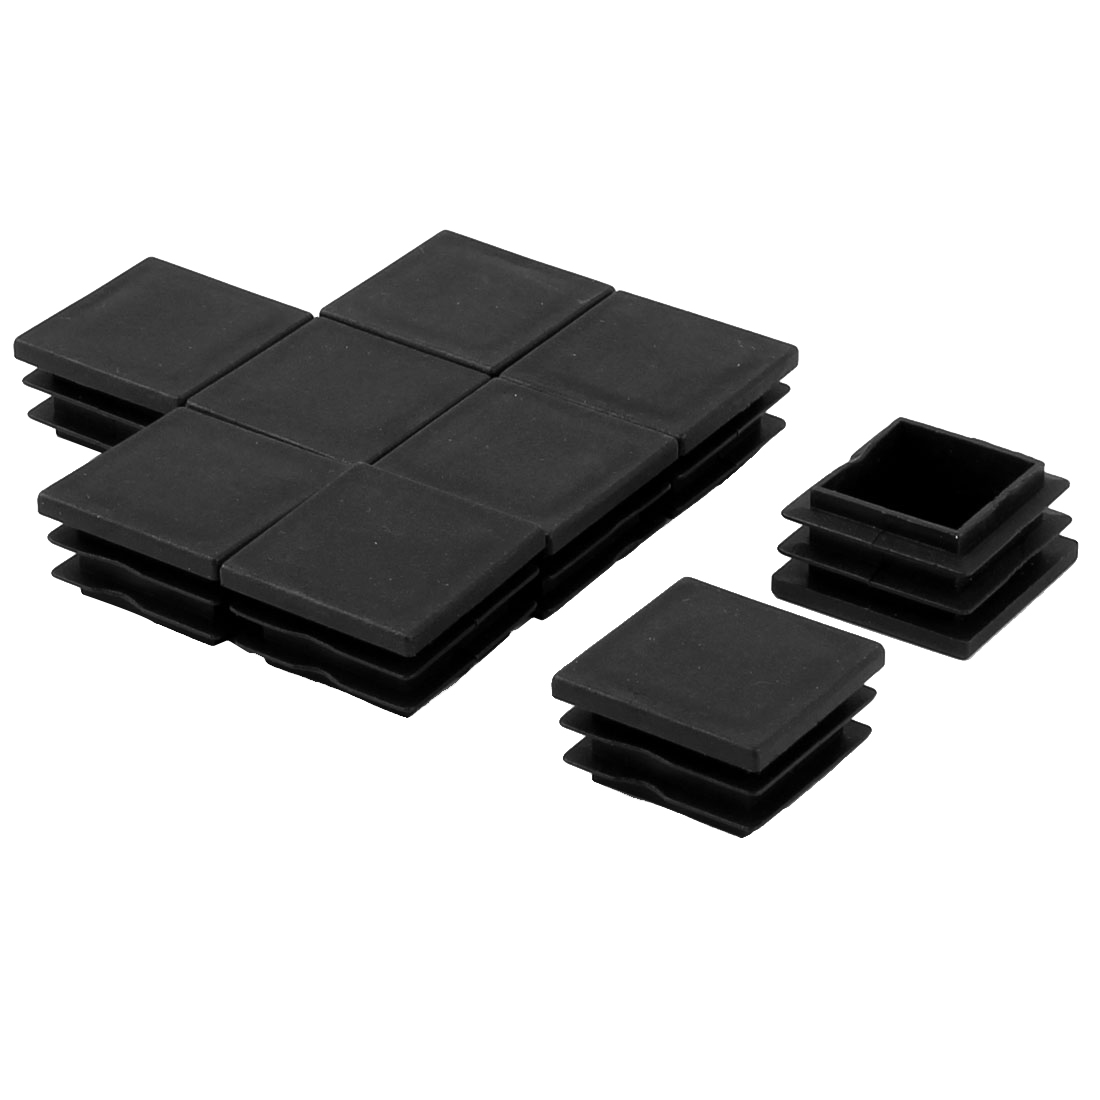 Desk Table Feet Plastic Square Tube Inserts End Blanking Caps Black 9pcs